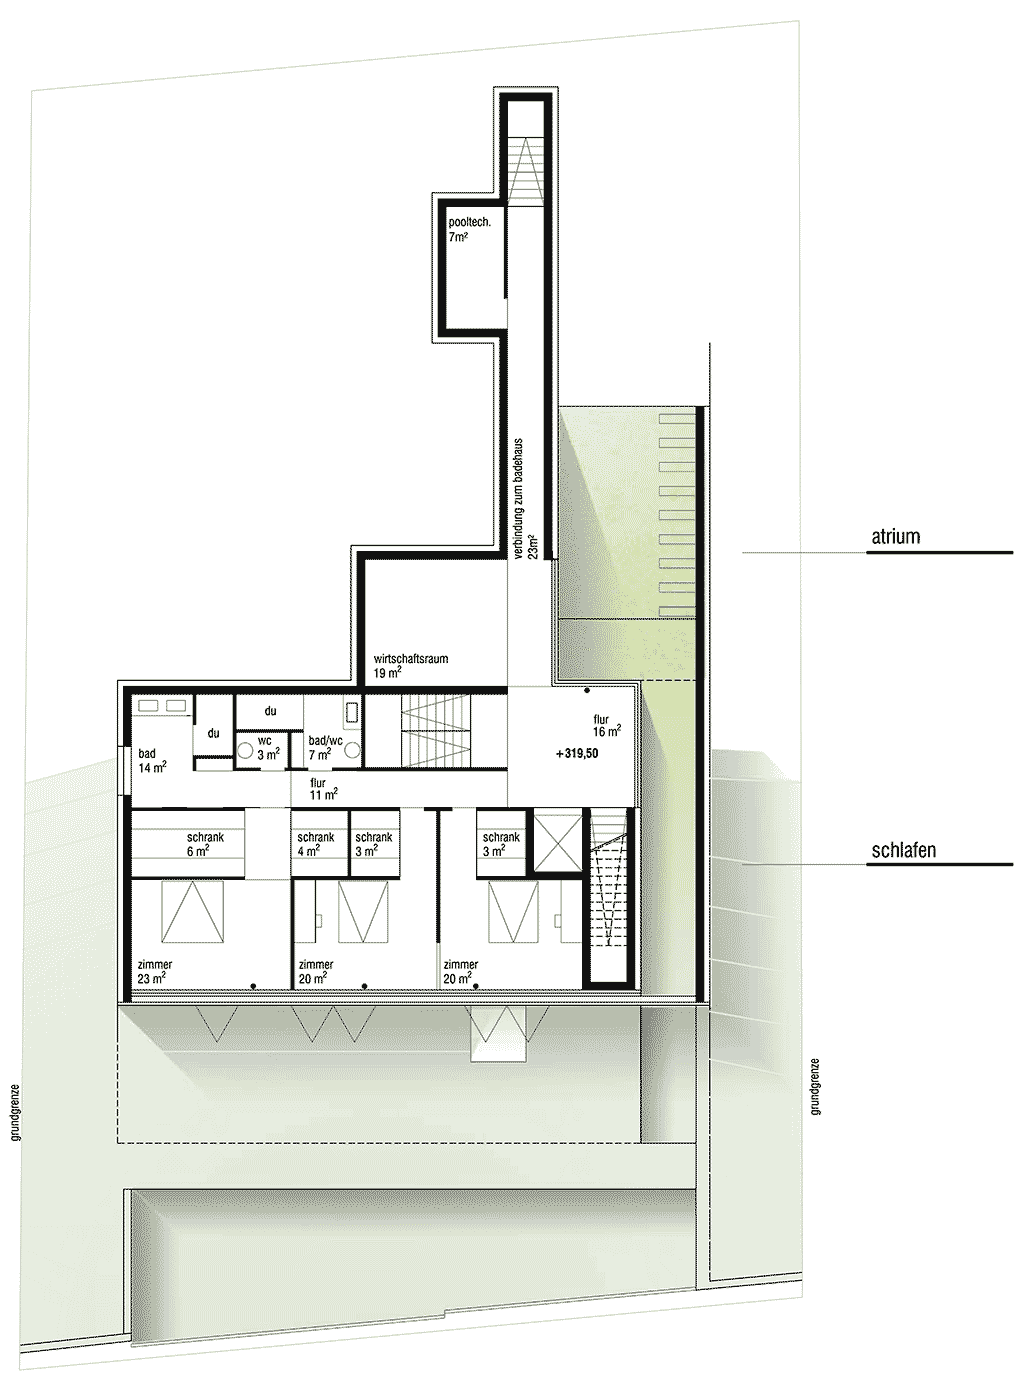 Second floor plan architecture lab for Gt issa floor plans